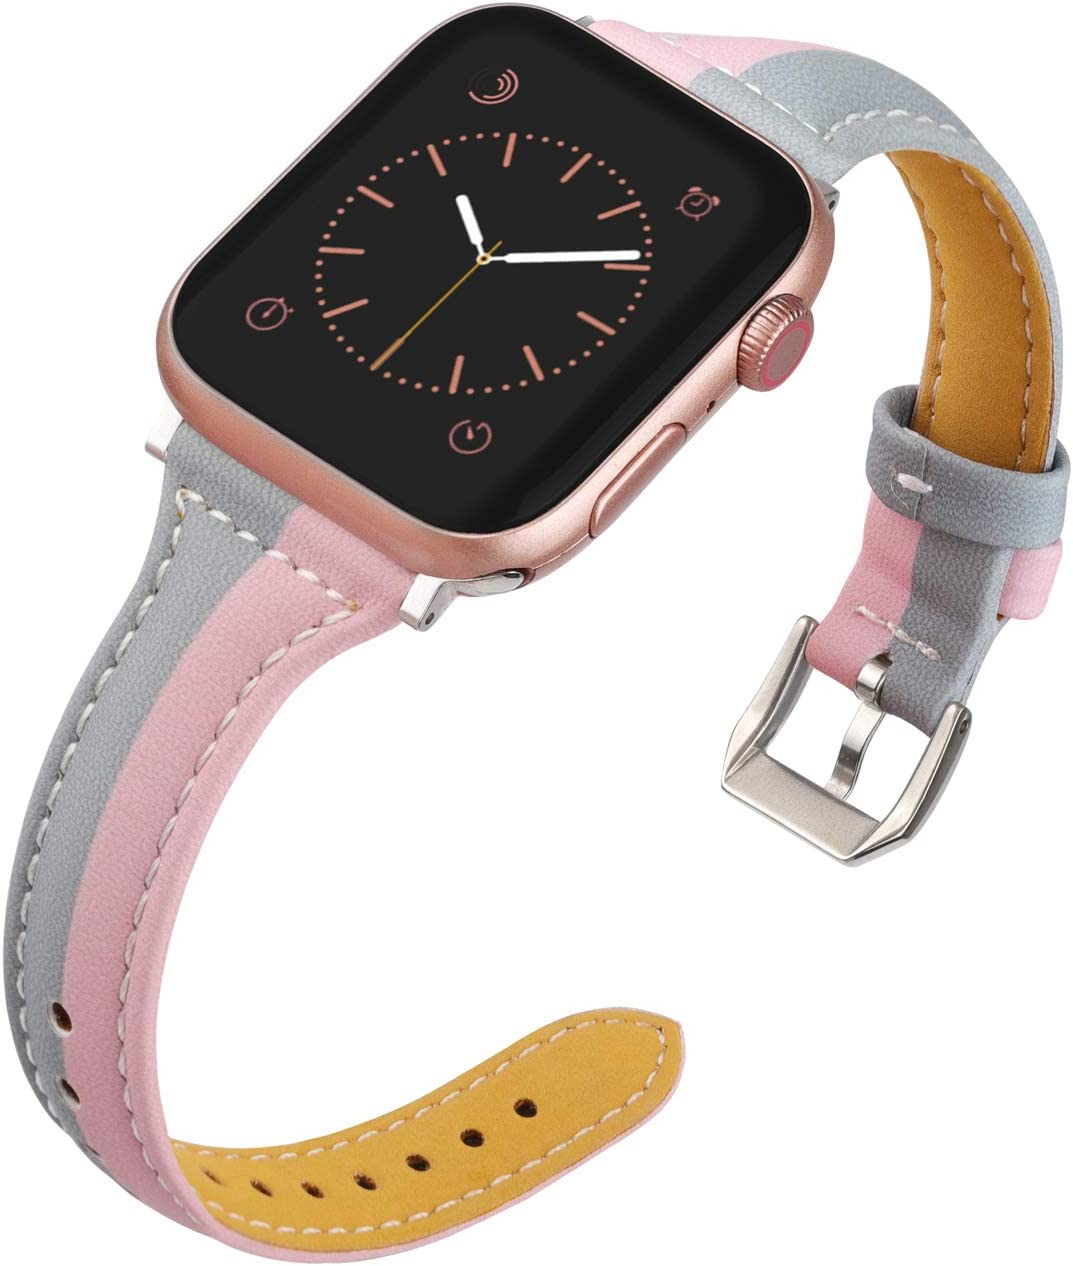 Wearlizer Thin Leather Compatible with Apple Watch Bands 38mm 40mm for iWatch SE Top Grain Strap, Womens Mens Slim Pink Gray Leisure Cute Two-Tone Wristband (Silver Clasp) Series 6 5 4 3 2 1 Sport